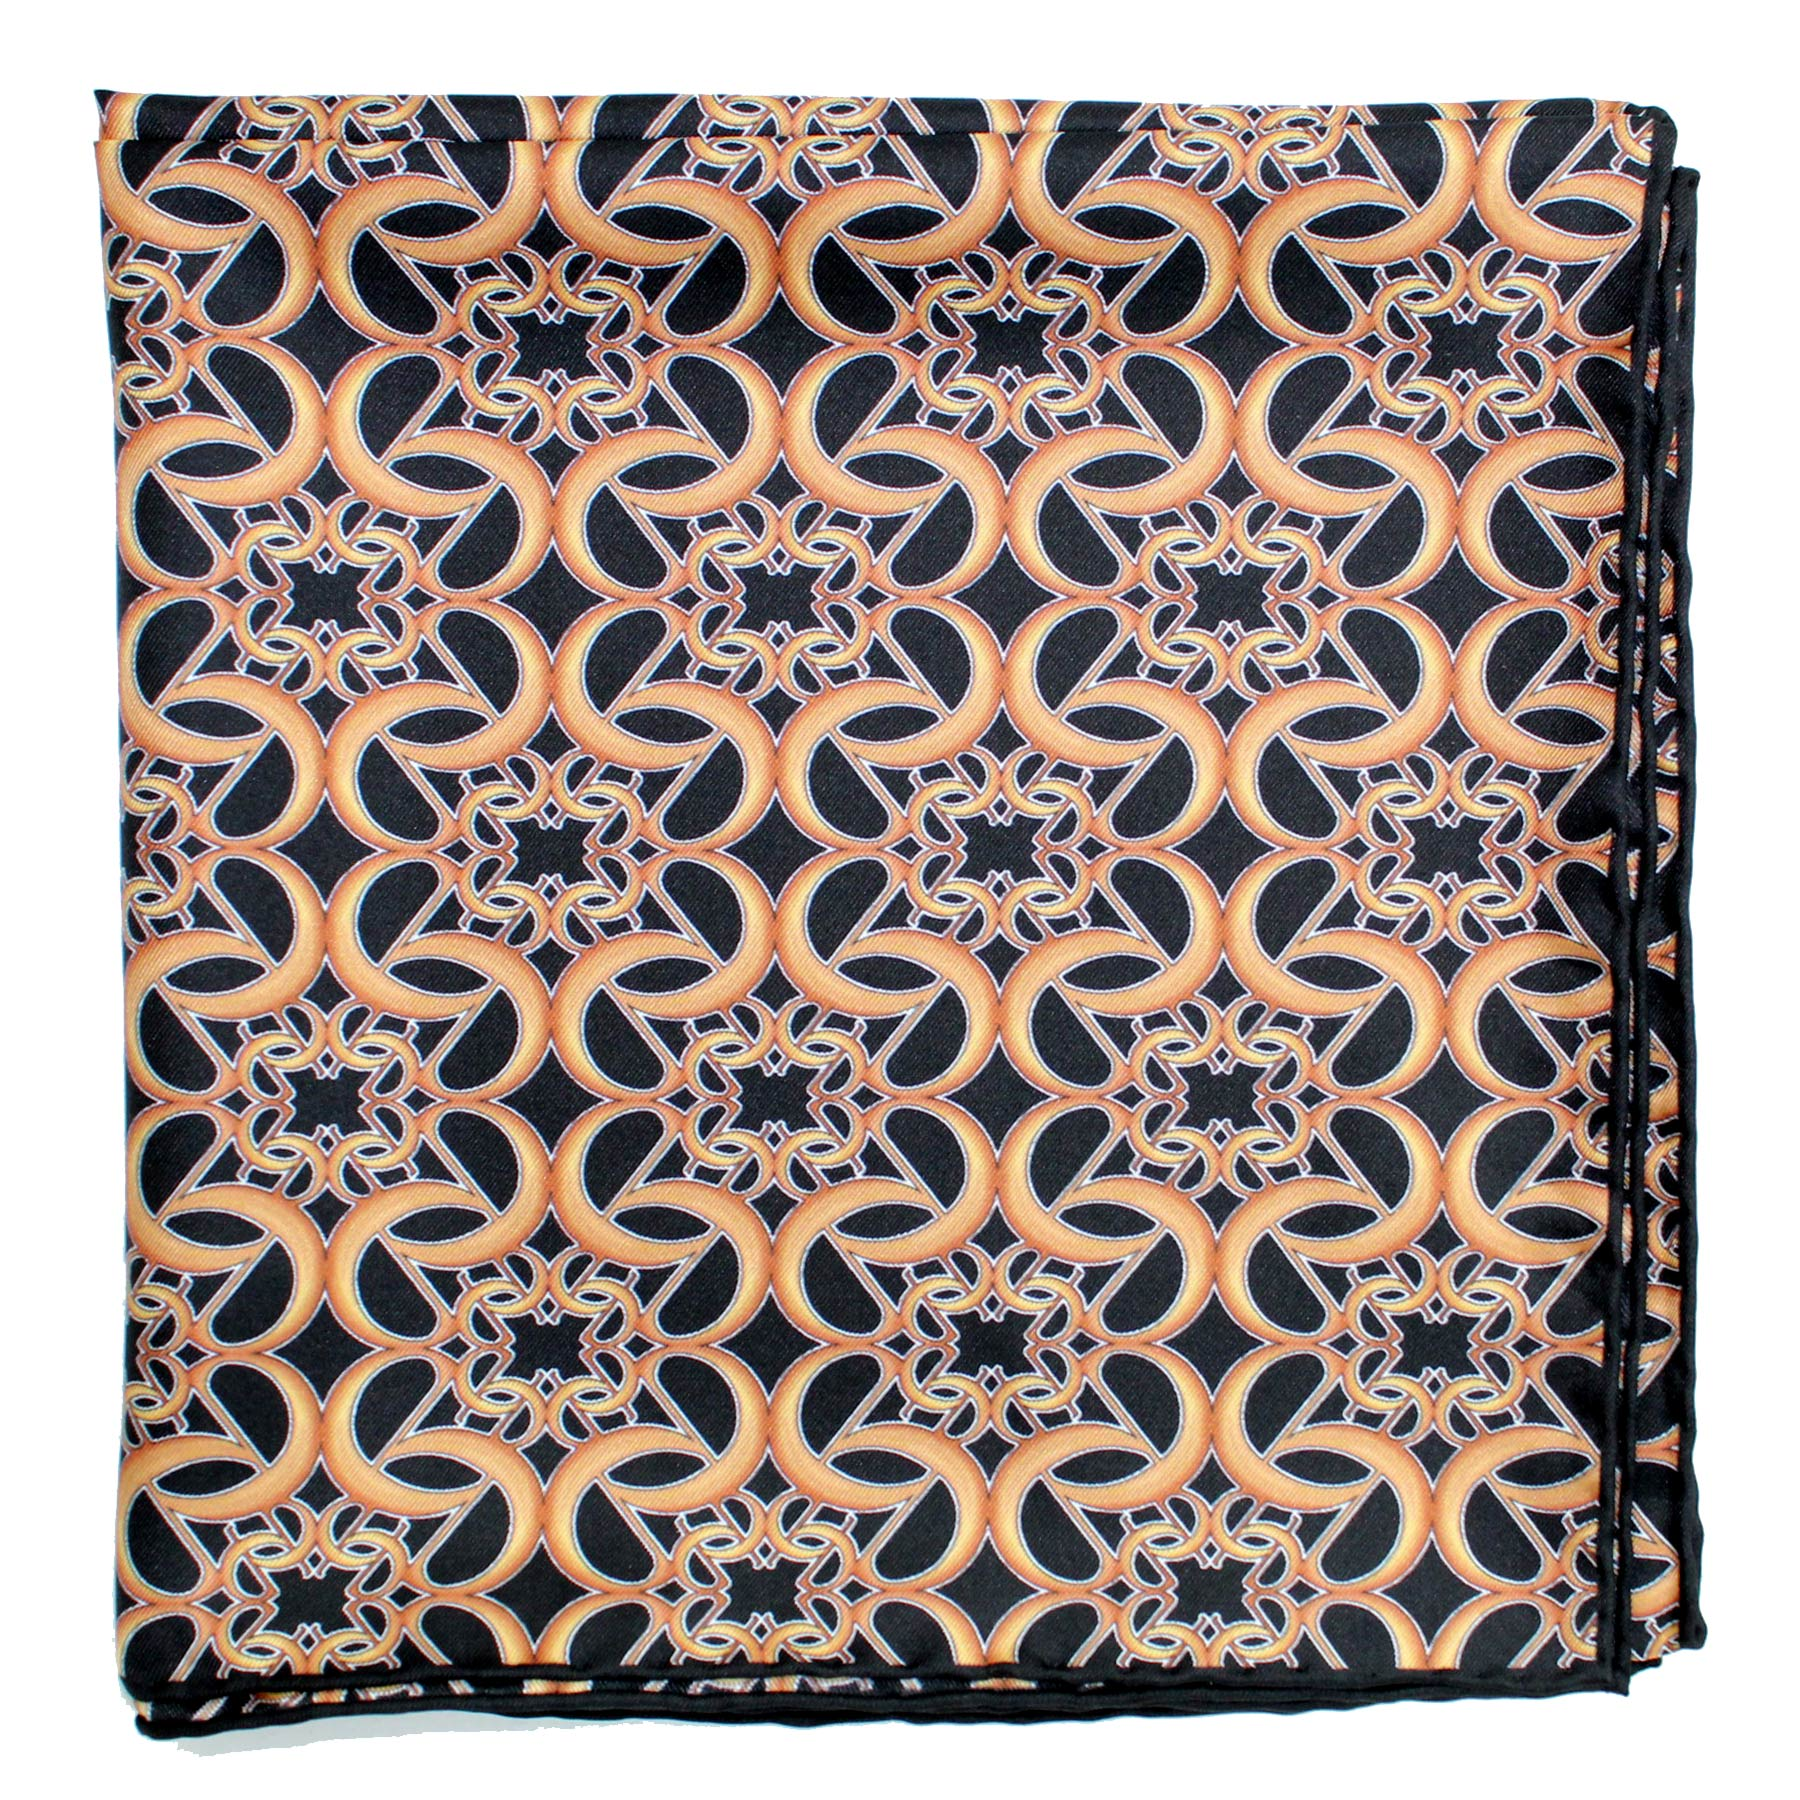 Elie Saab Scarf Black Brown-Gold - Large Twill Silk Square Scarf SALE